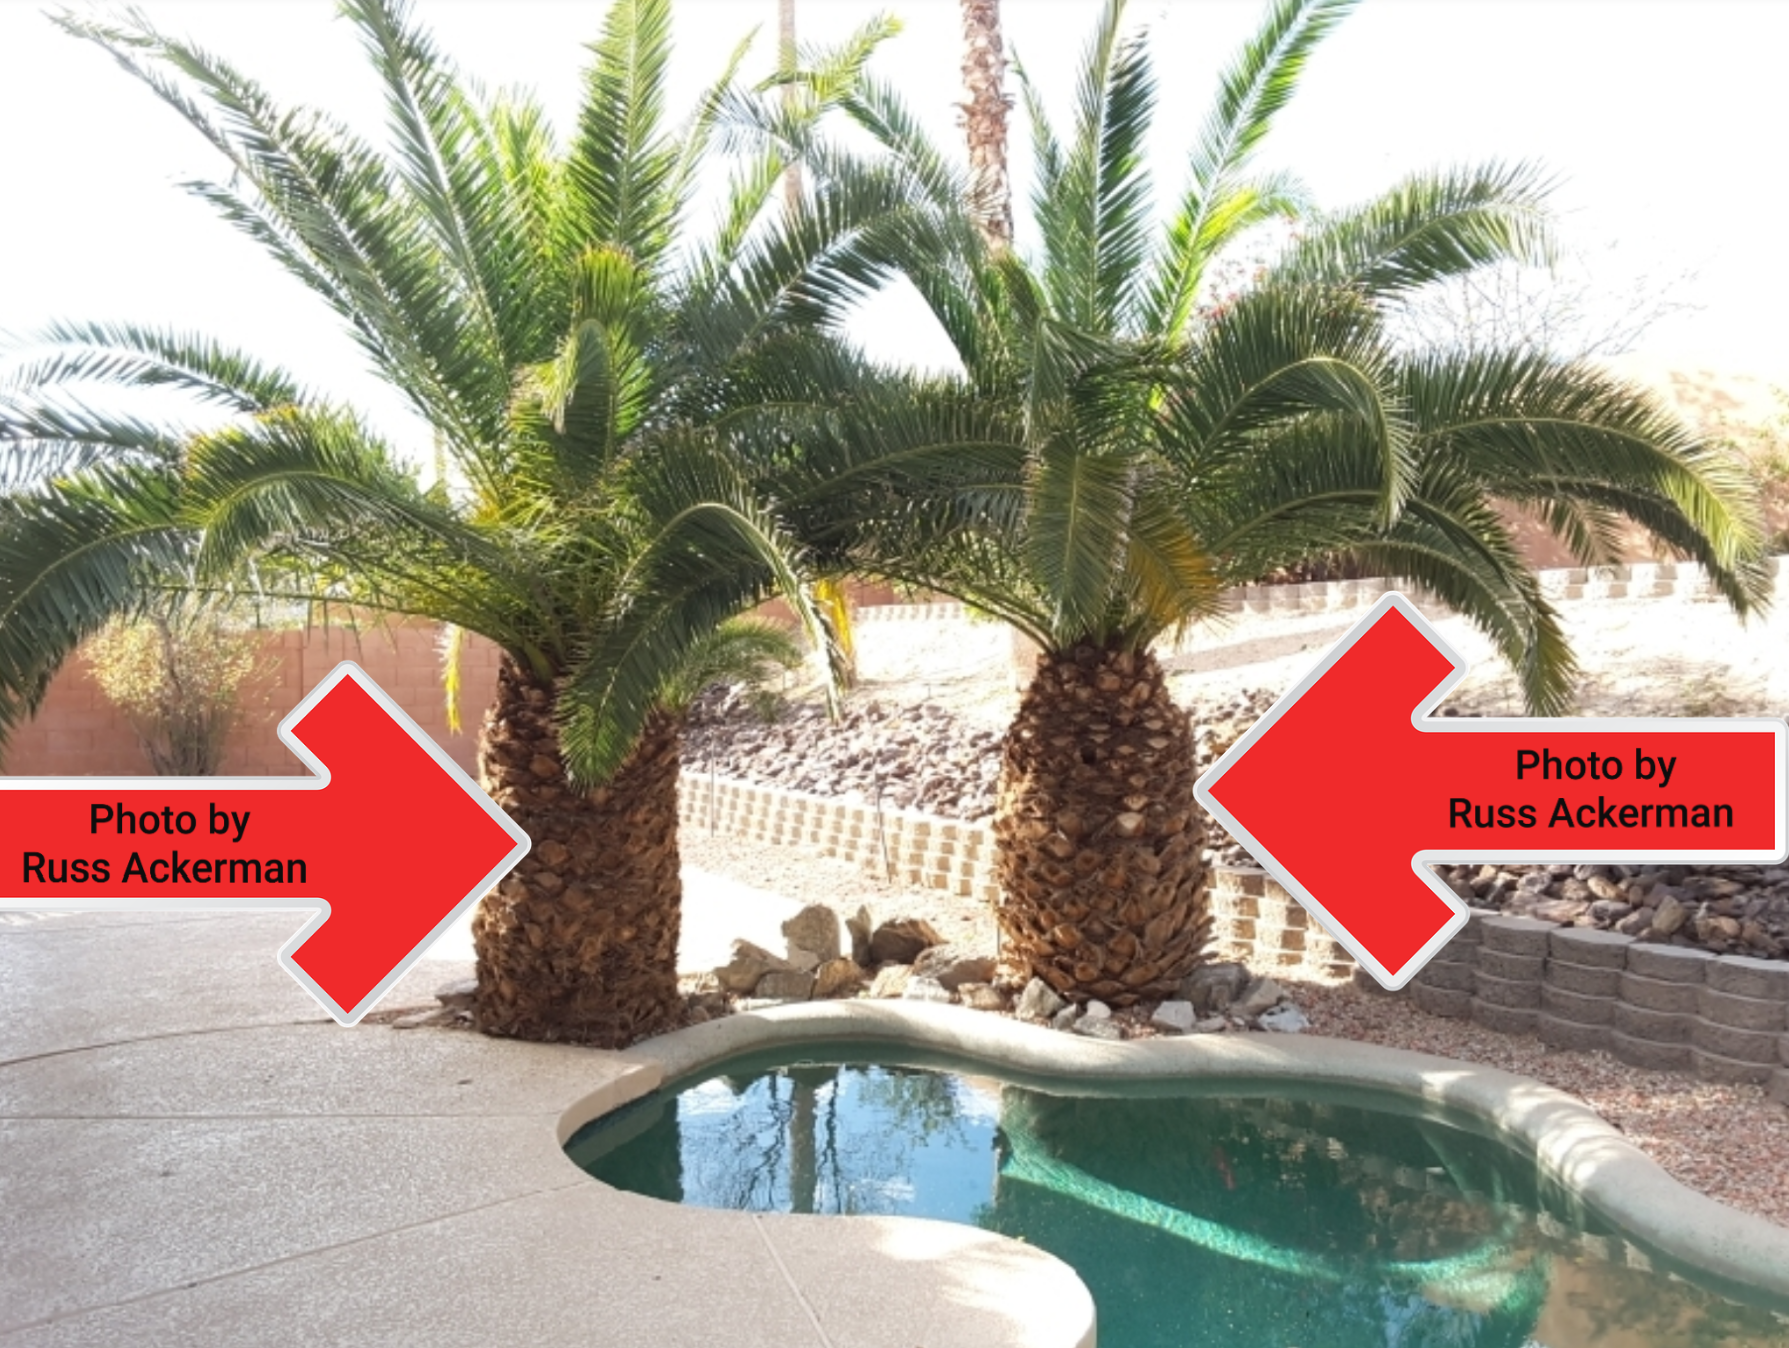 Palm roots are less intrusive than other trees, but when planted this close, they may eventually cause damage the the pool structure and liner.